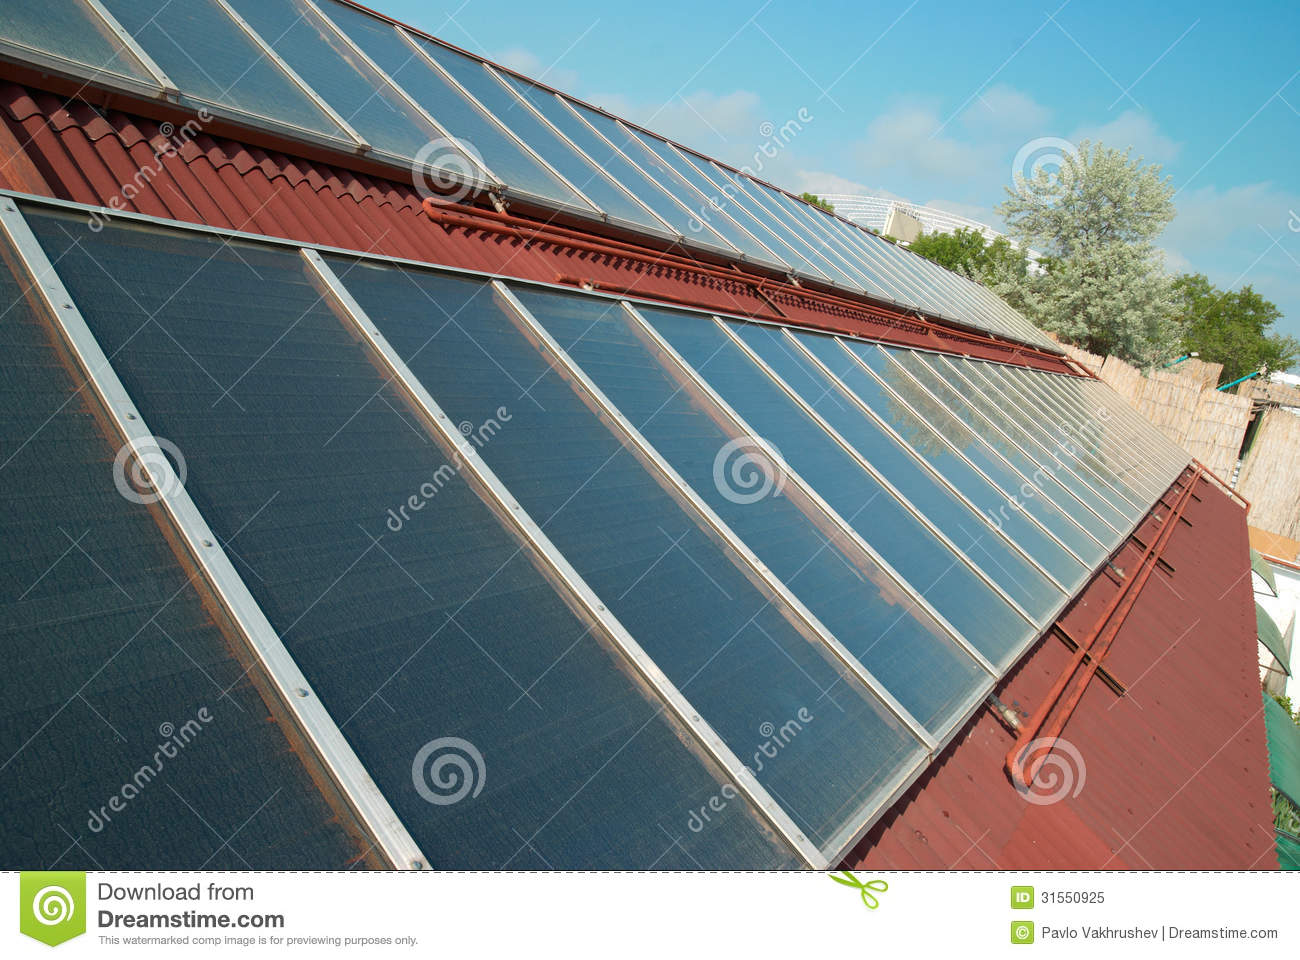 Roof Heating Systems : Solar system on the roof royalty free stock photo image